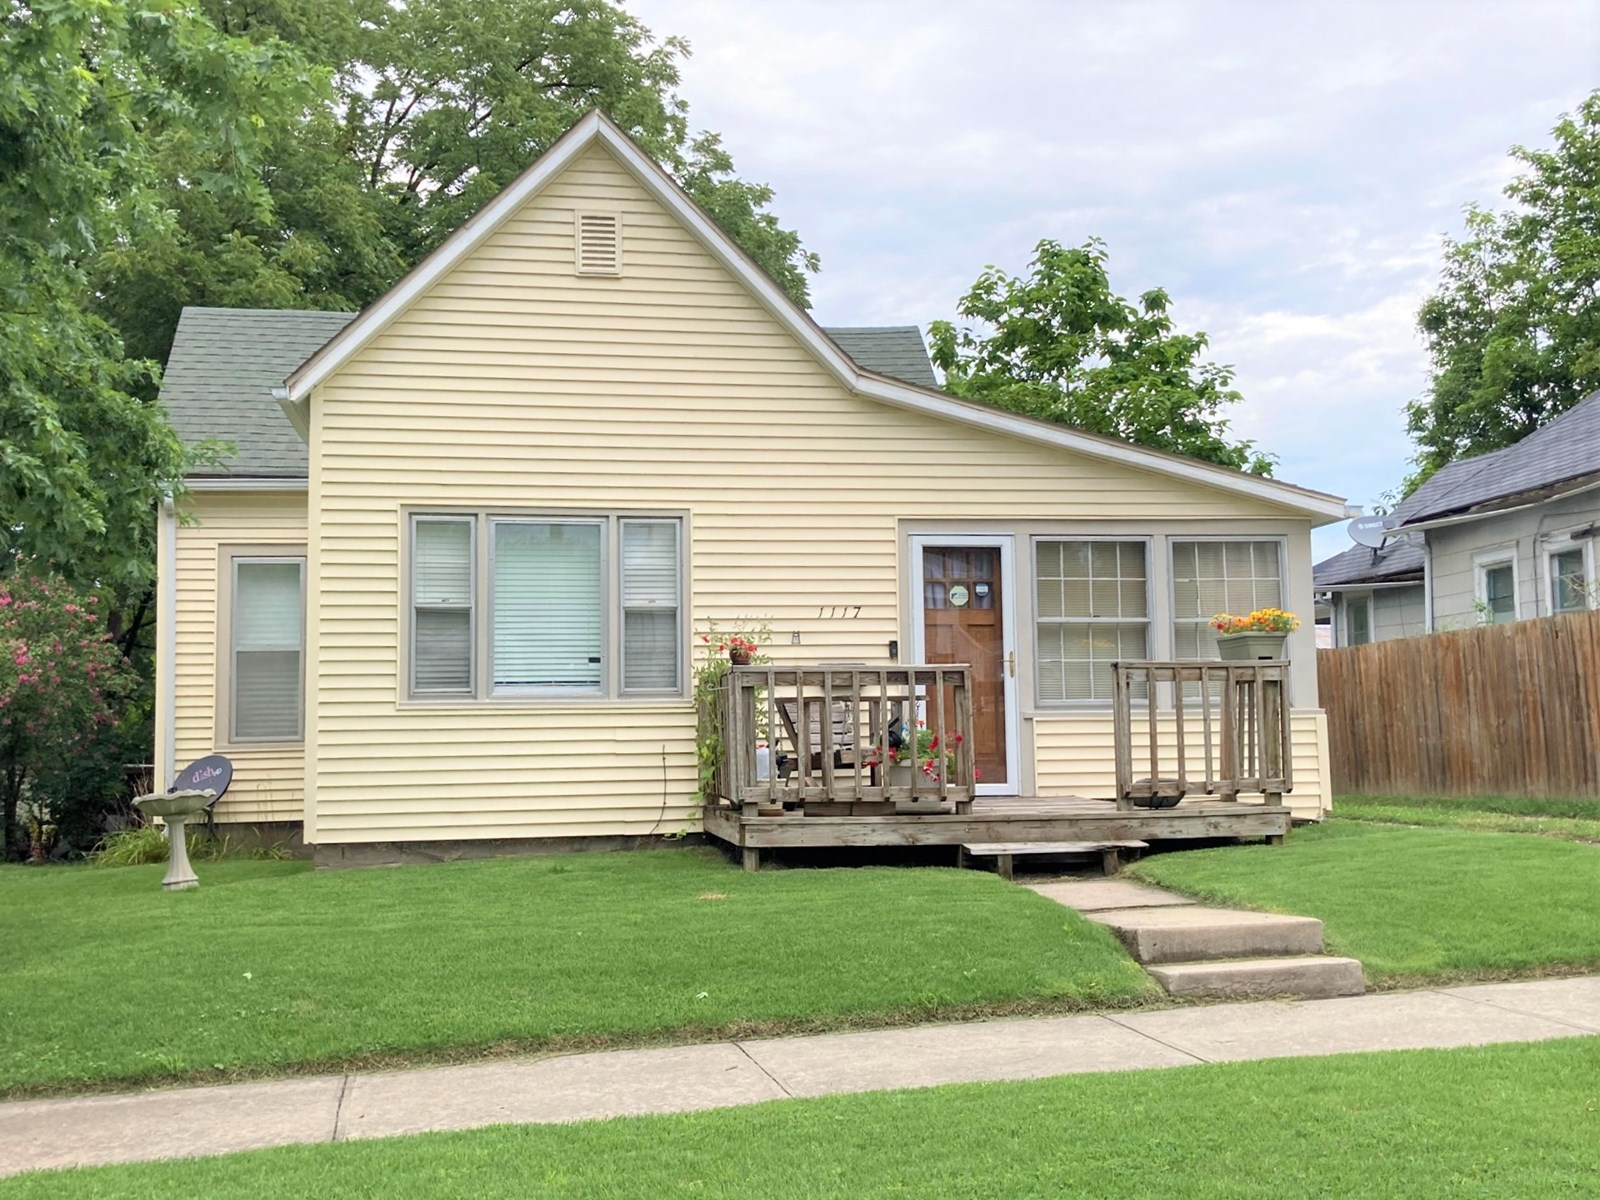 3 Bedroom, 1 Bath Adorable Home Priced To Sell!